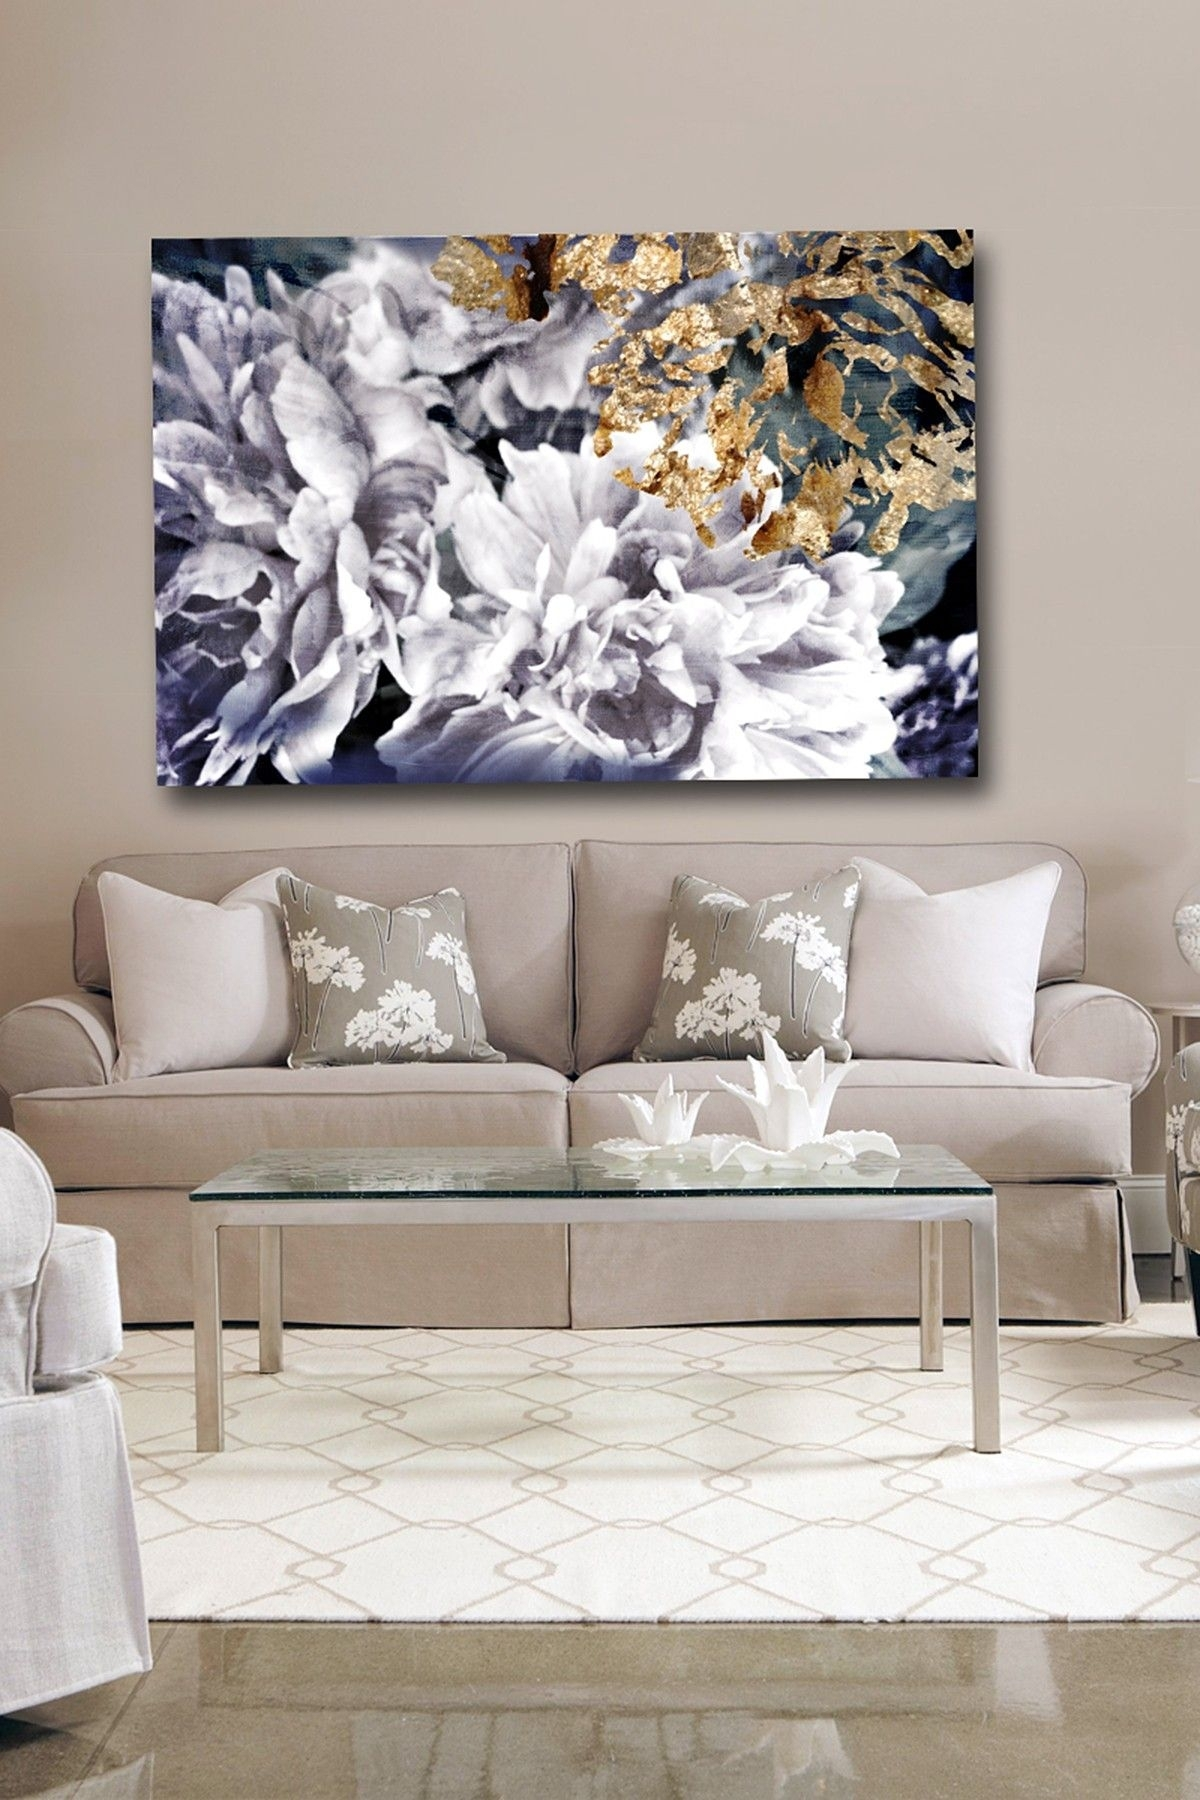 Oliver Gal Dos Gardenias Canvas Wall Art | Hautelook | Home Pertaining To Most Recent Mississauga Canvas Wall Art (Gallery 11 of 15)